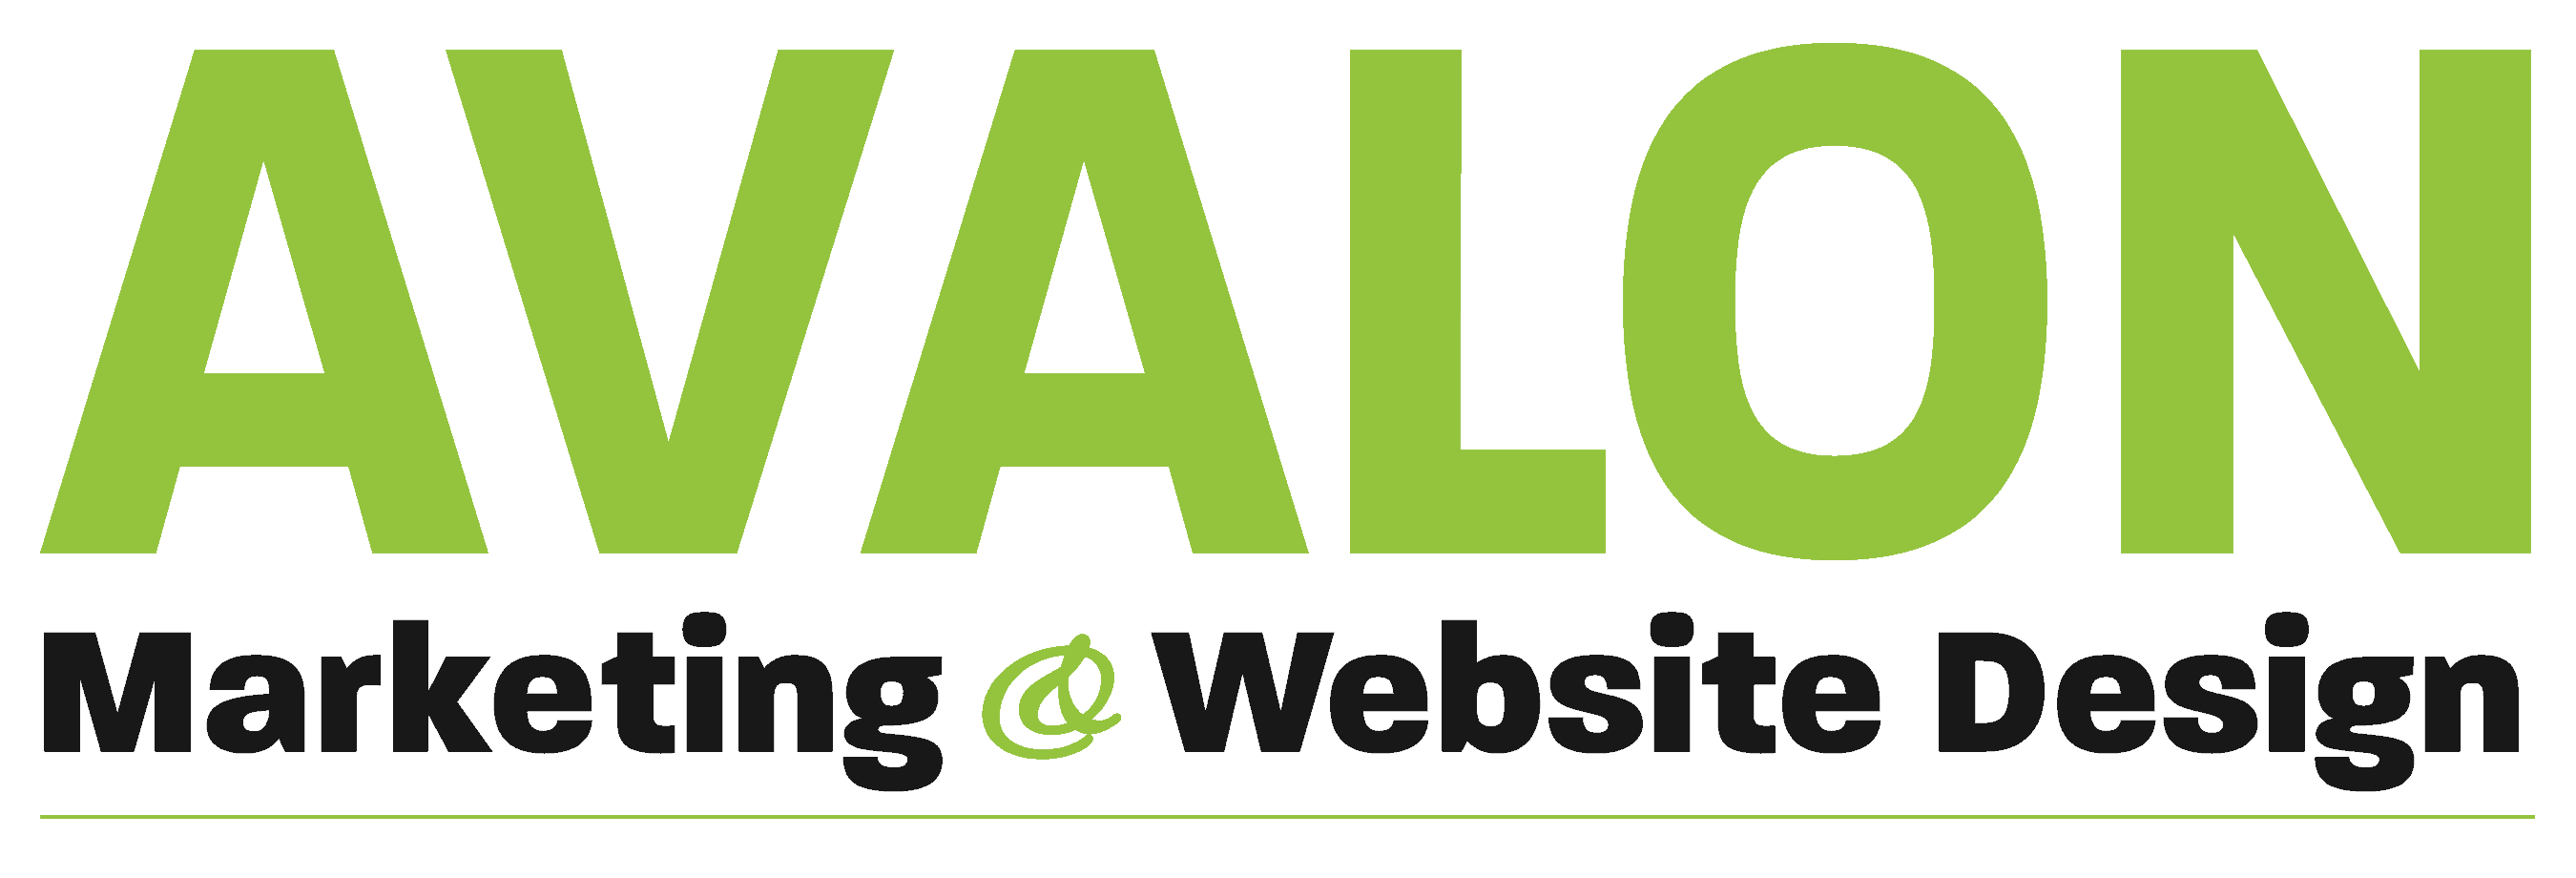 Avalon Marketing & Website Design Ltd.